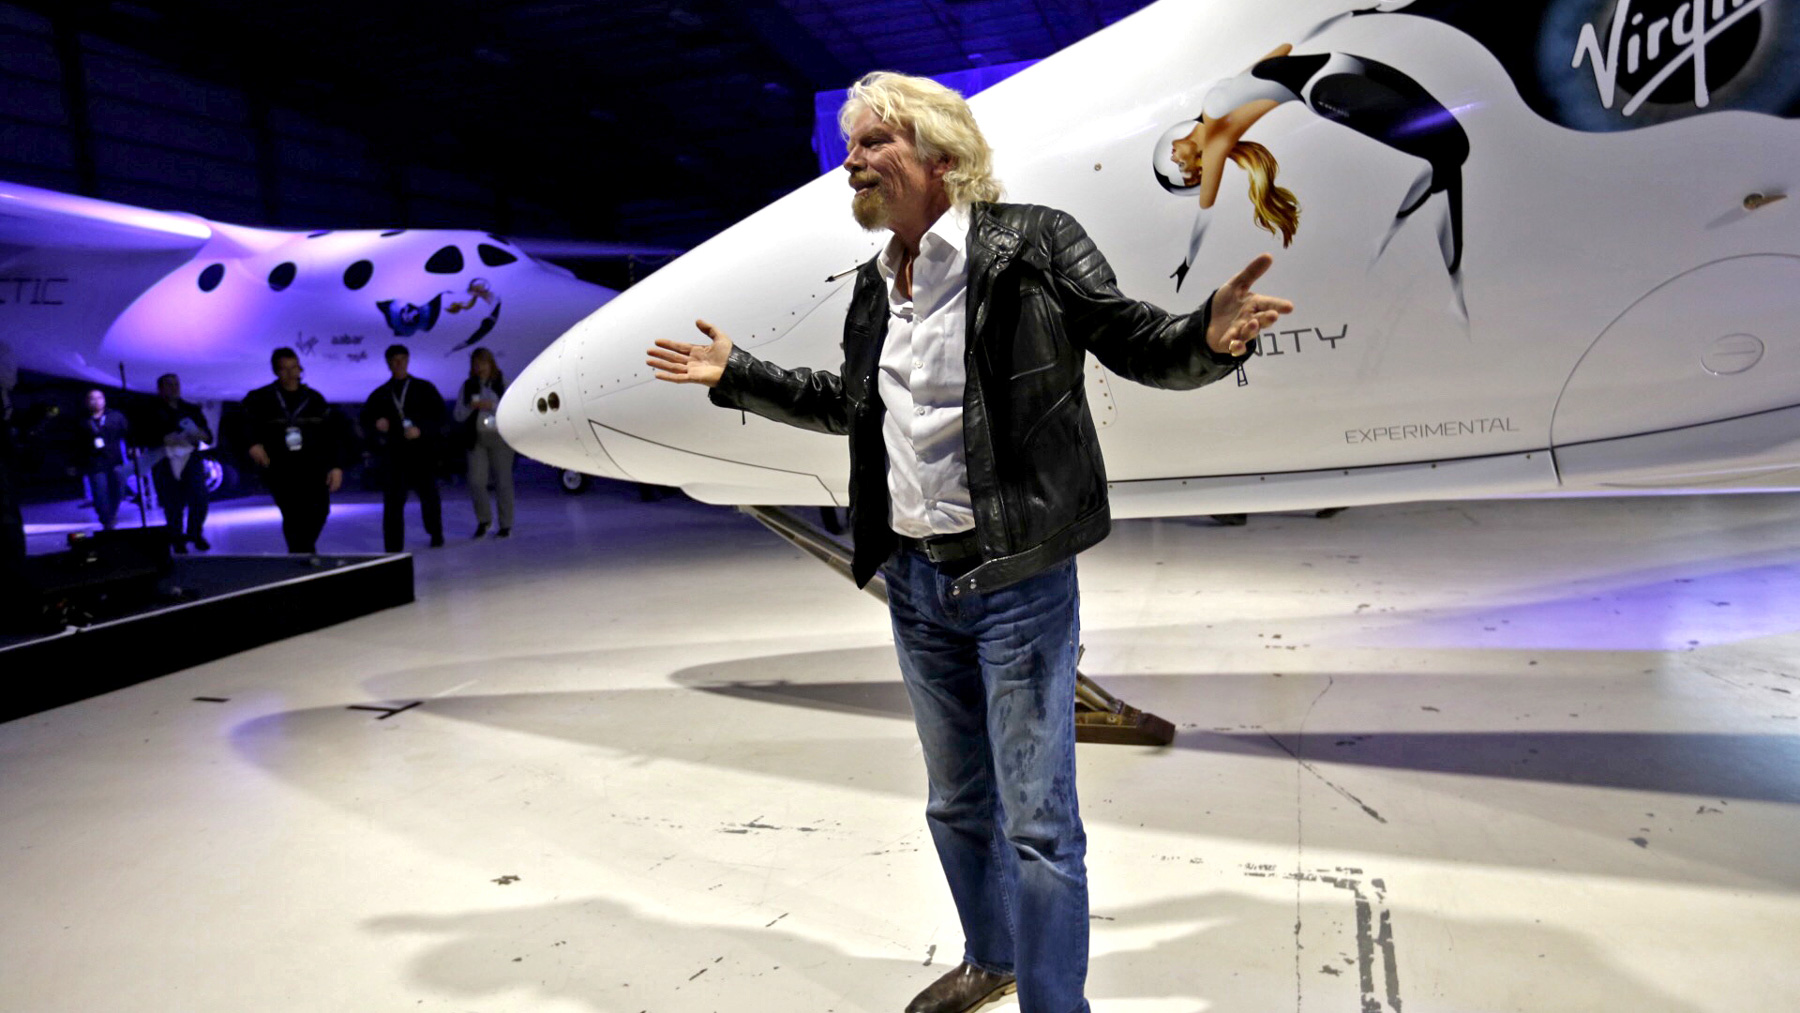 Richard Branson Rode Out Hurricane Irma In The Wine Cellar